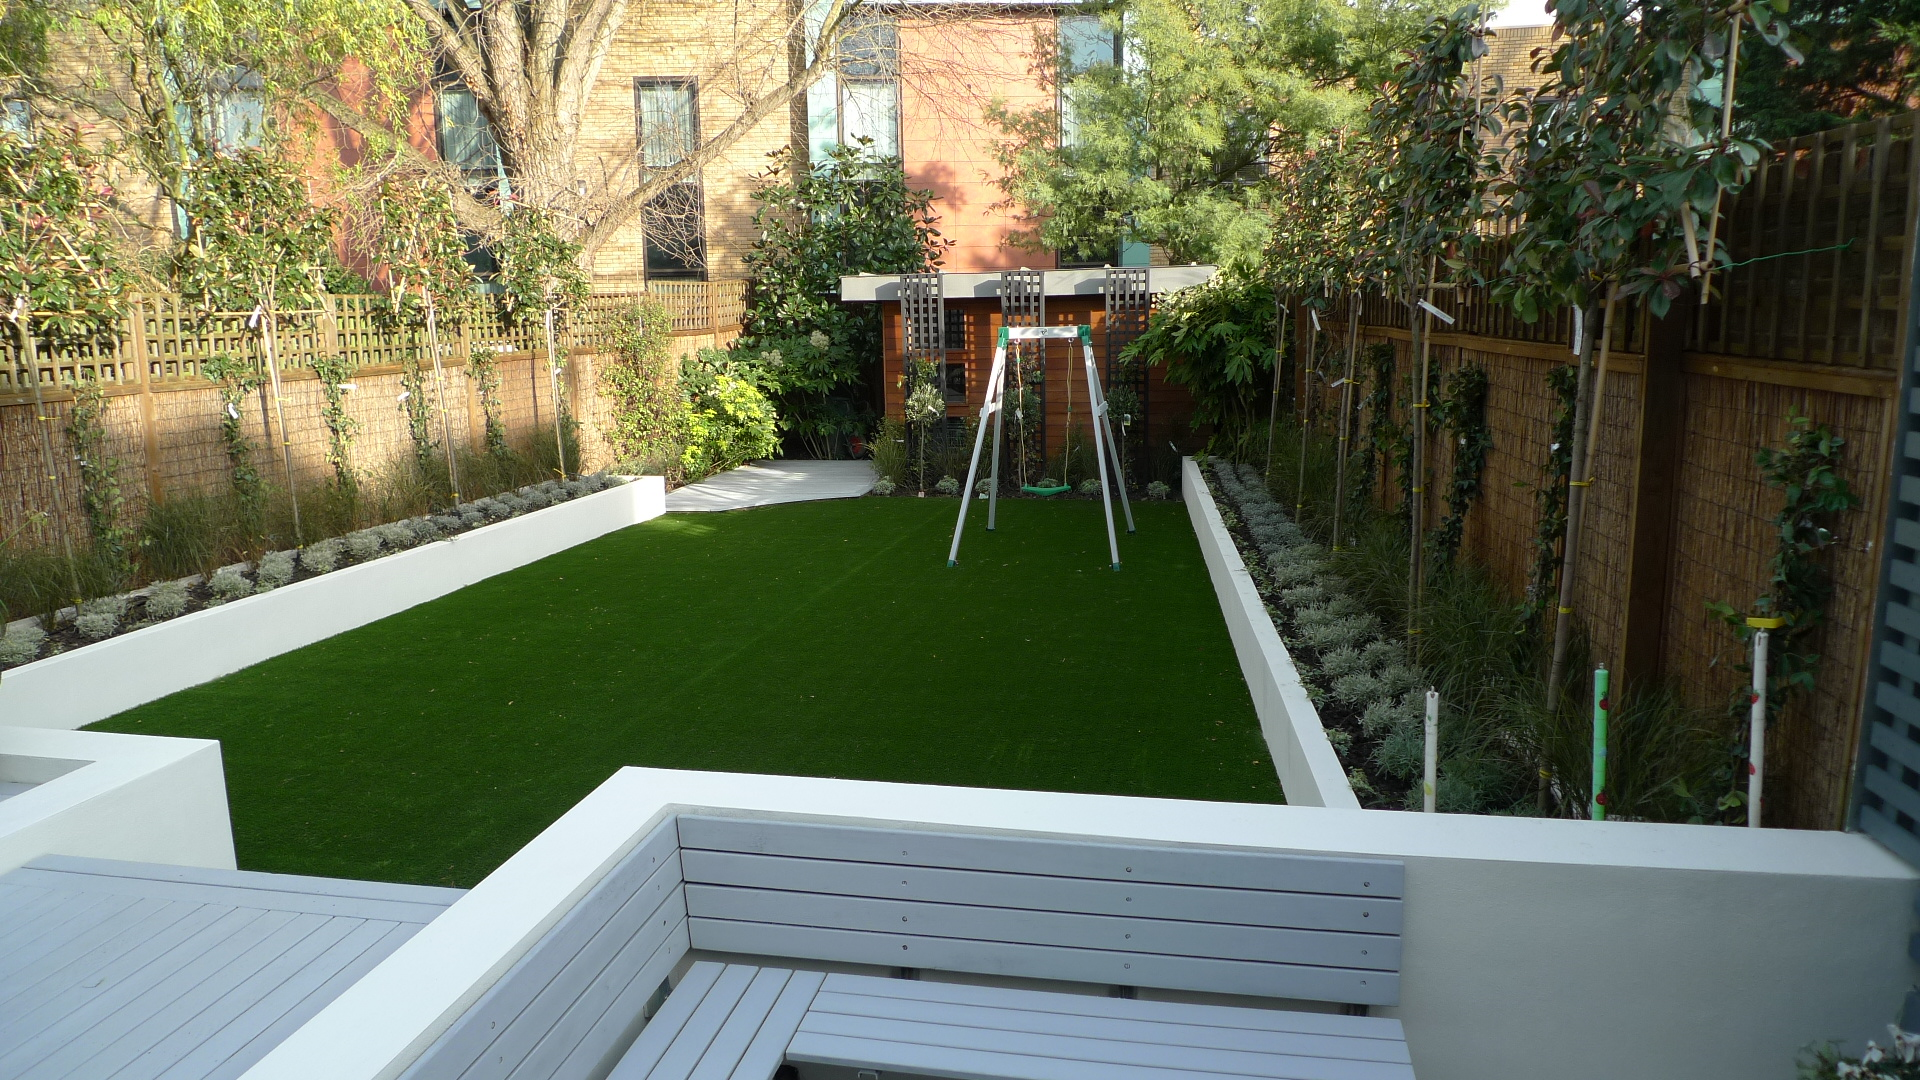 Modern garden design ideas london london garden design for Large patio design ideas